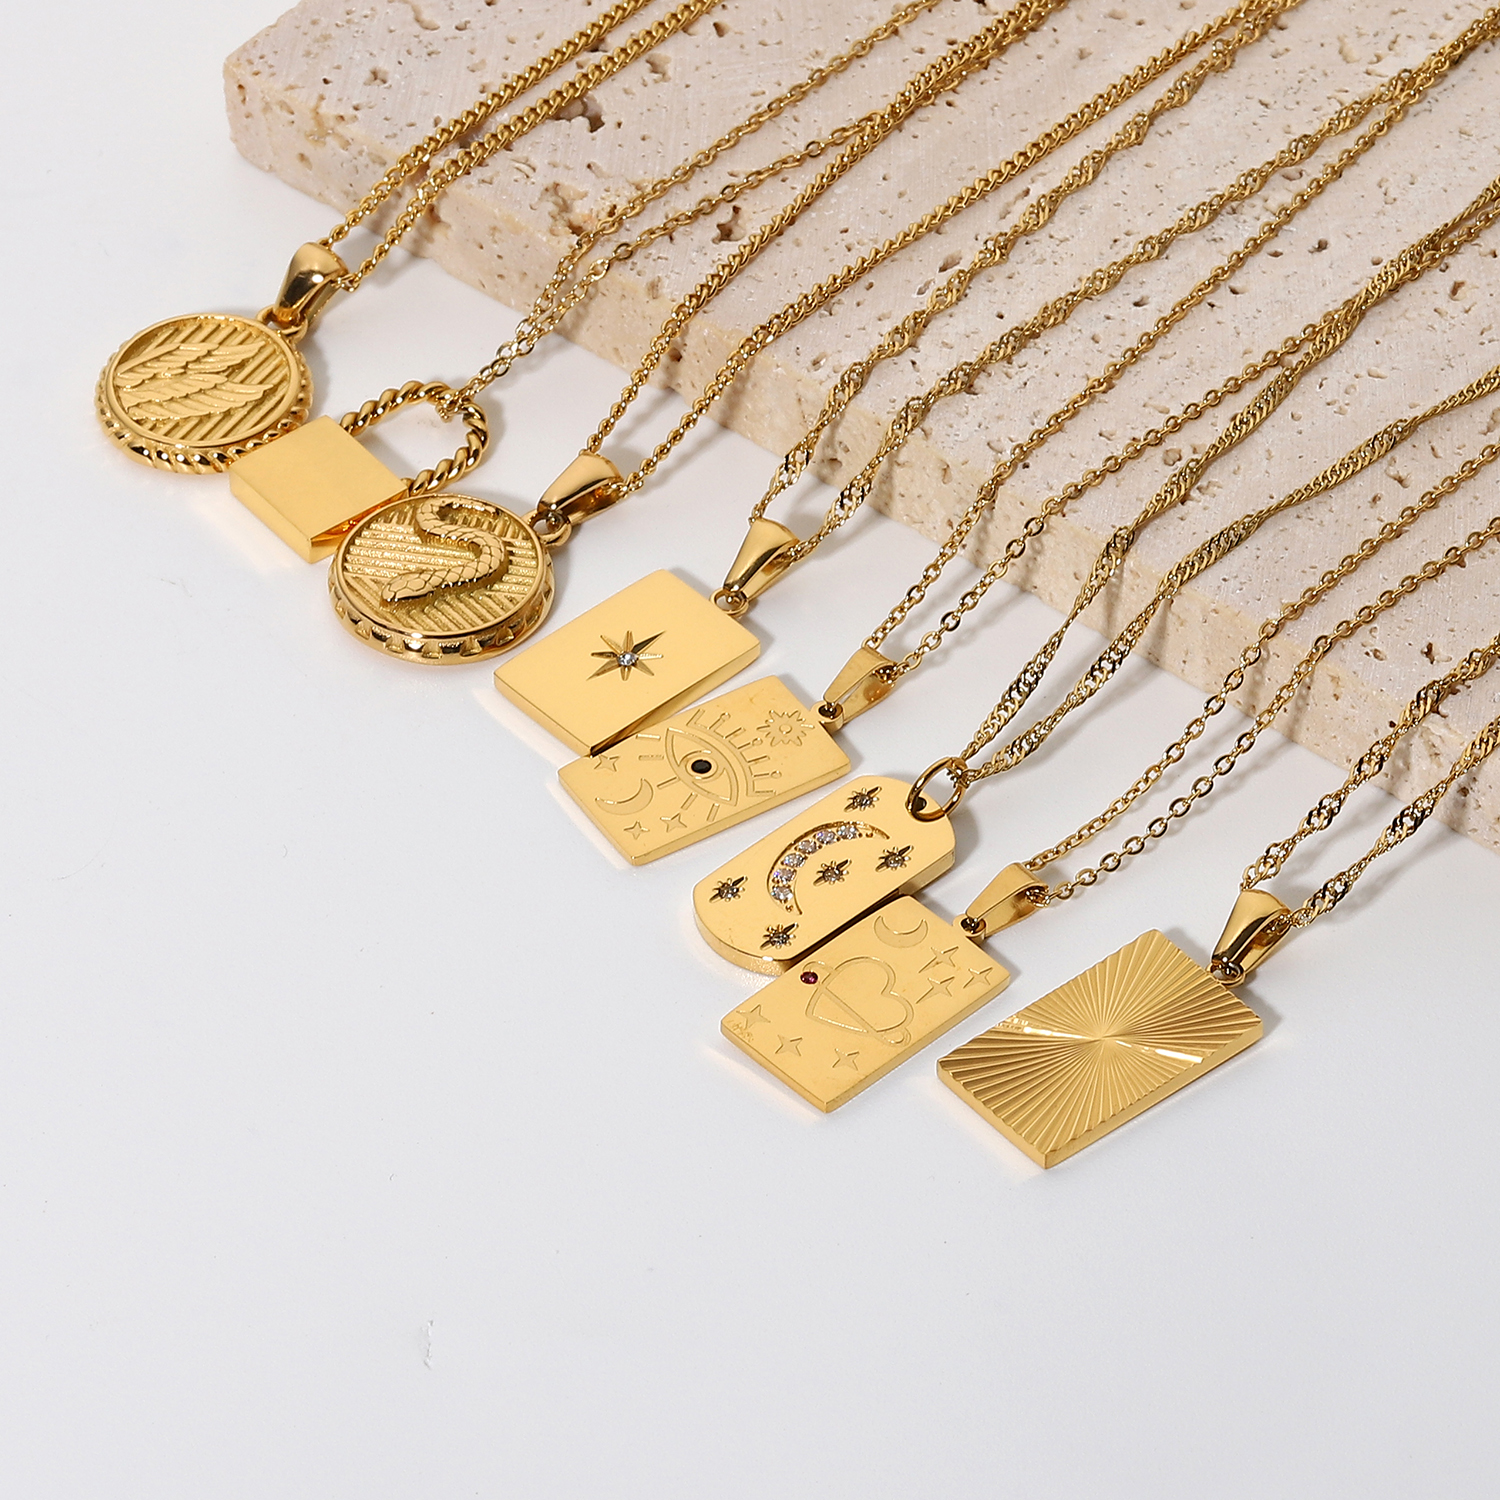 New18k Gold Plated Stainless Steel Free Wing Greek mythology Necklace Square Shina myth Tarot Signet Pendant Necklace  For Women